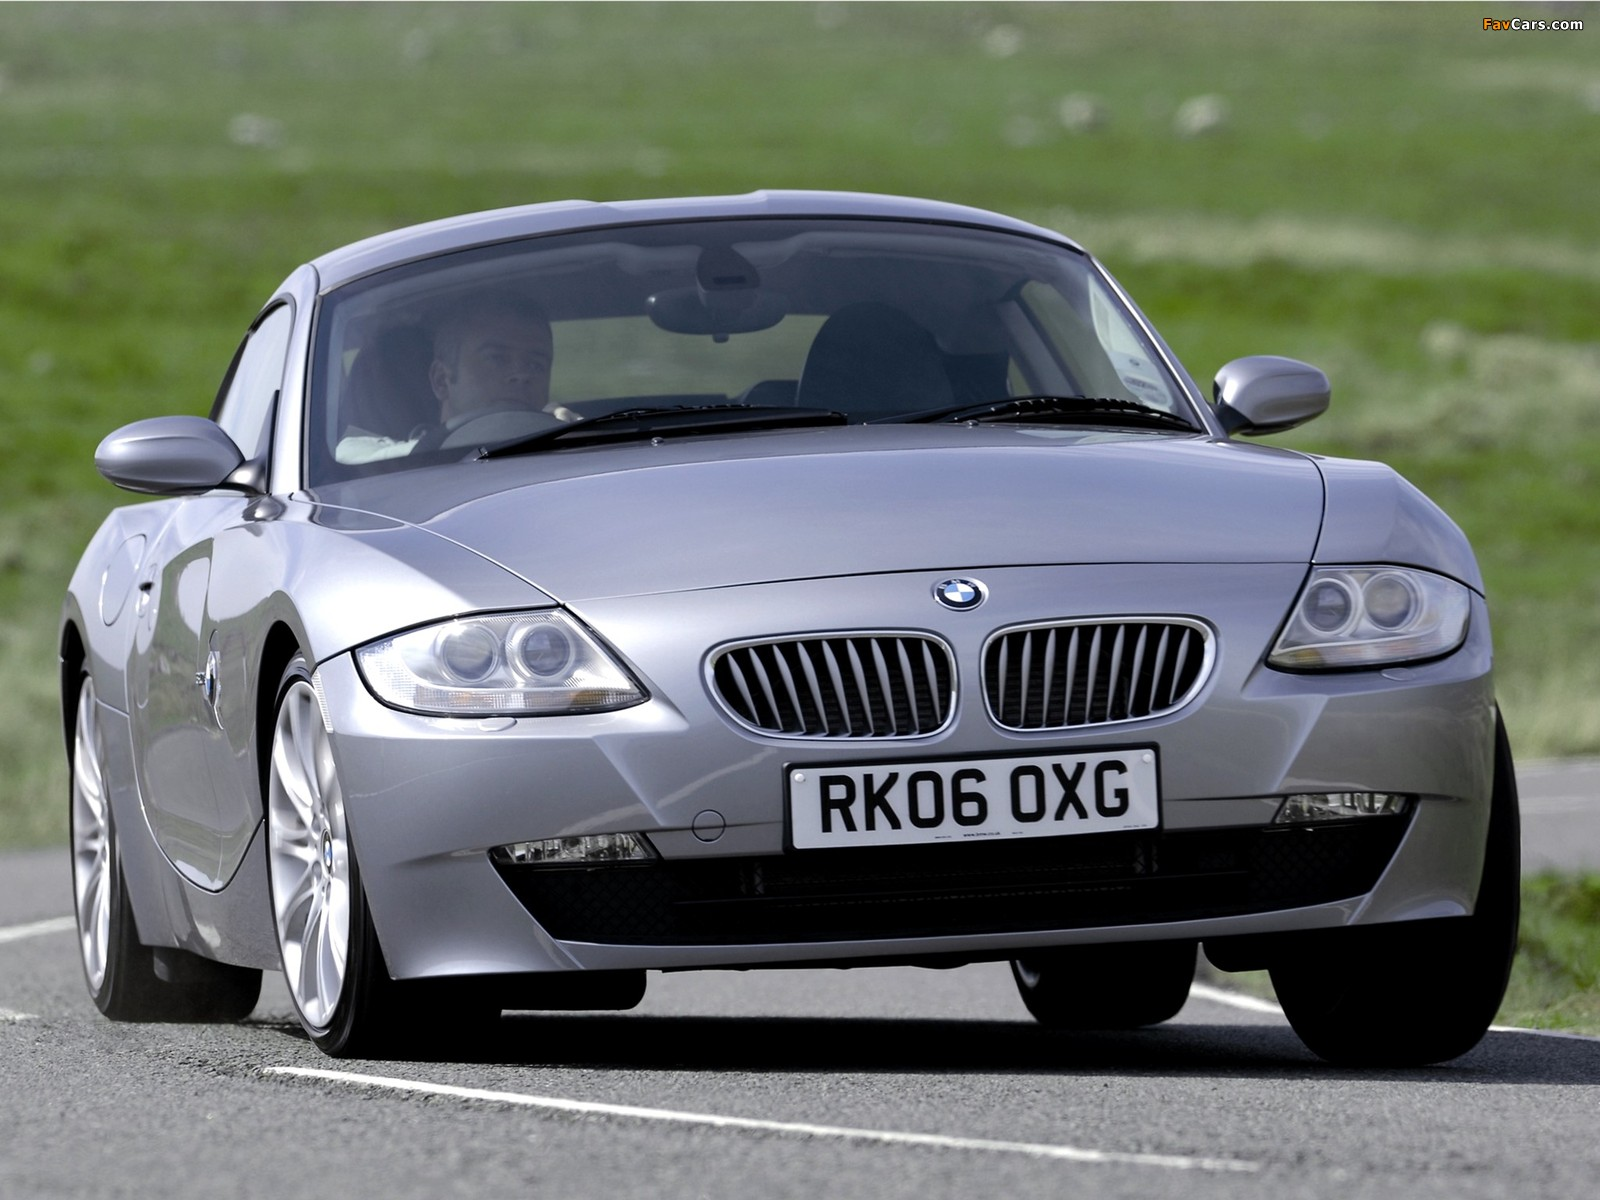 Photos Of Bmw Z4 3 0si Coupe Uk Spec 2006 09 1600x1200